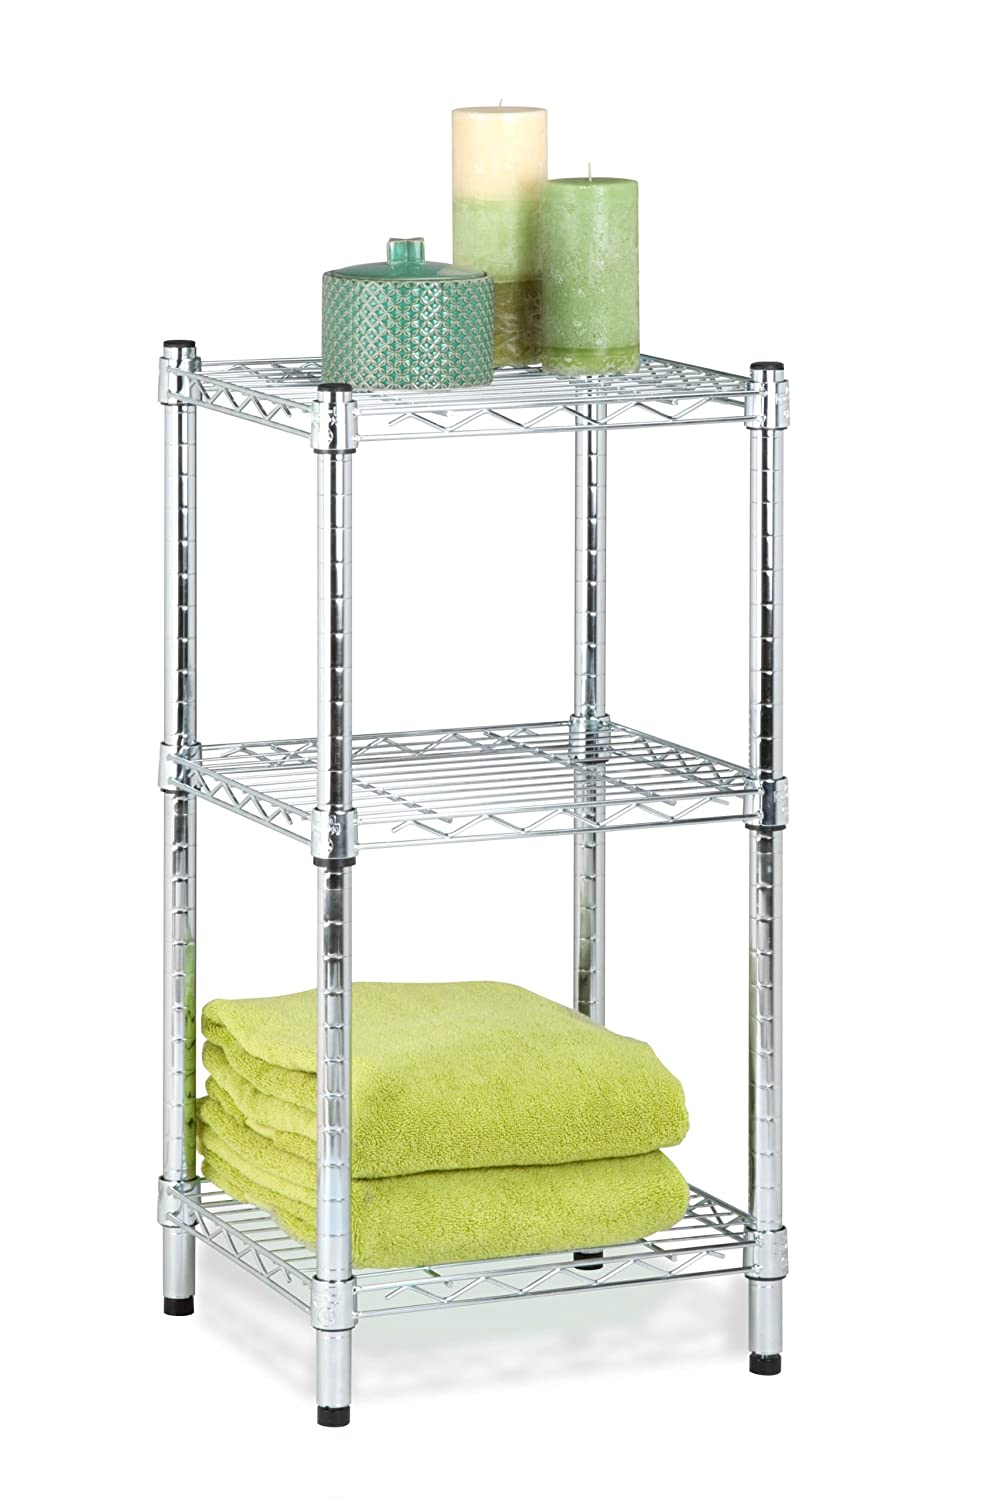 Honey-Can-Do SHF-02217 3-Tier Steel Wire Shelving Tower, Chrome, 14 by 15 by 30-Inch